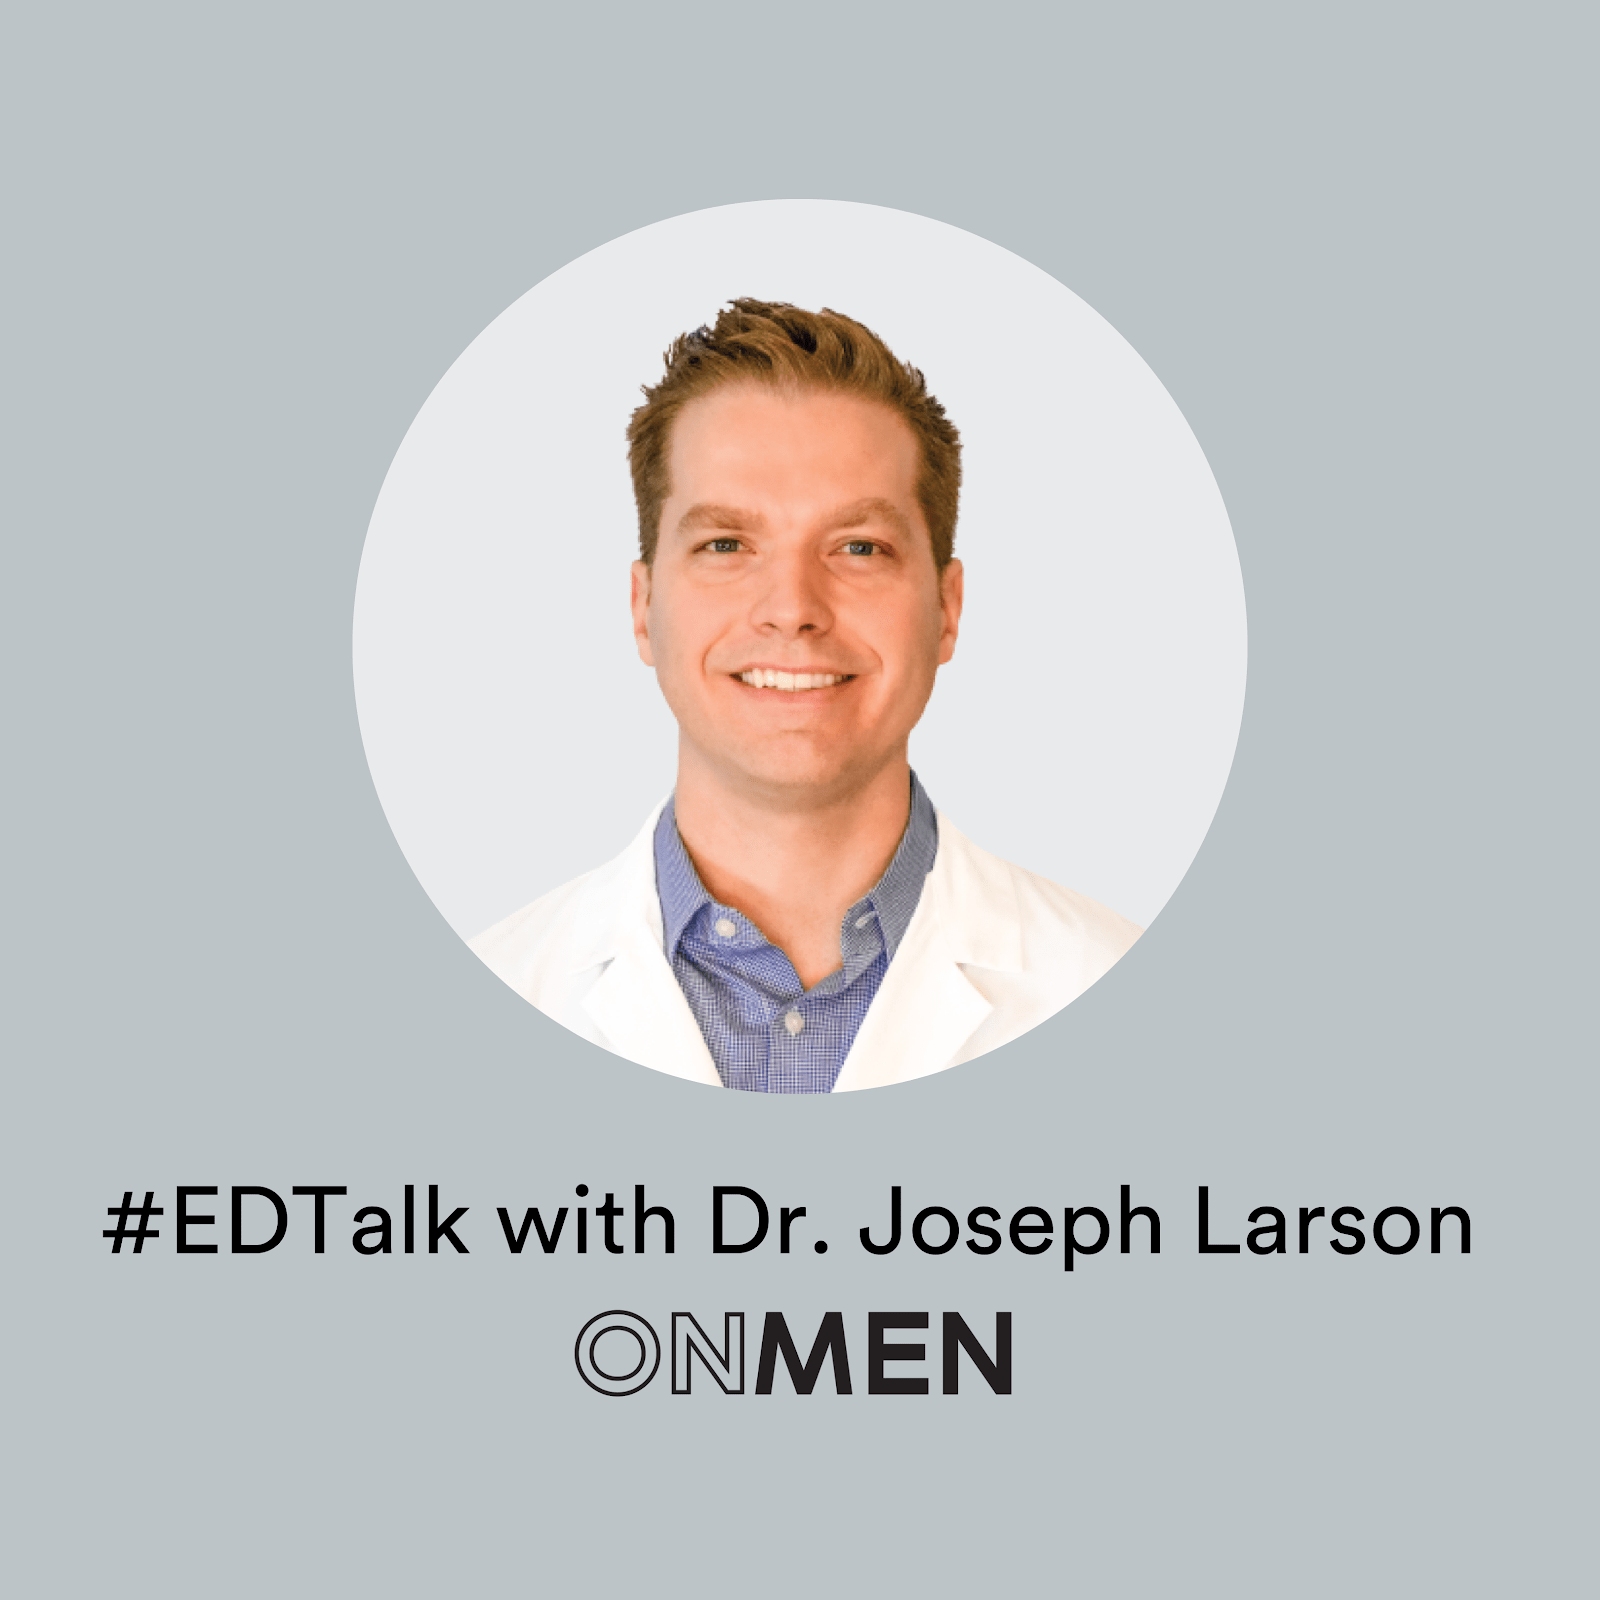 Erectile dysfunction with Dr. Joseph Larson